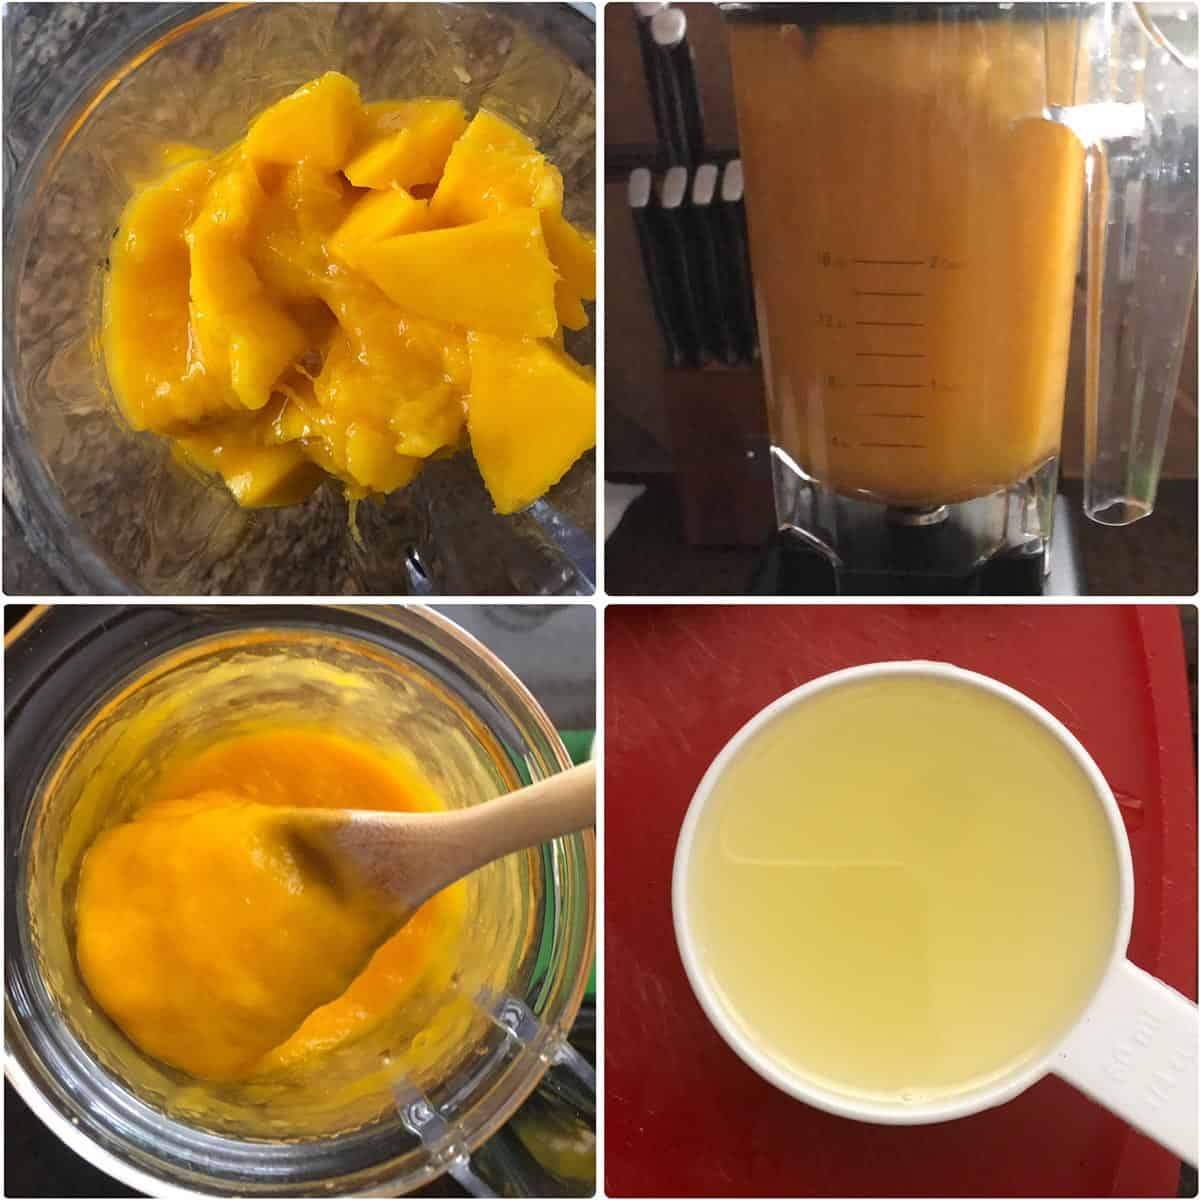 step by step photos showing chopped fruit being ground to puree and a measuring cup with lemon juice